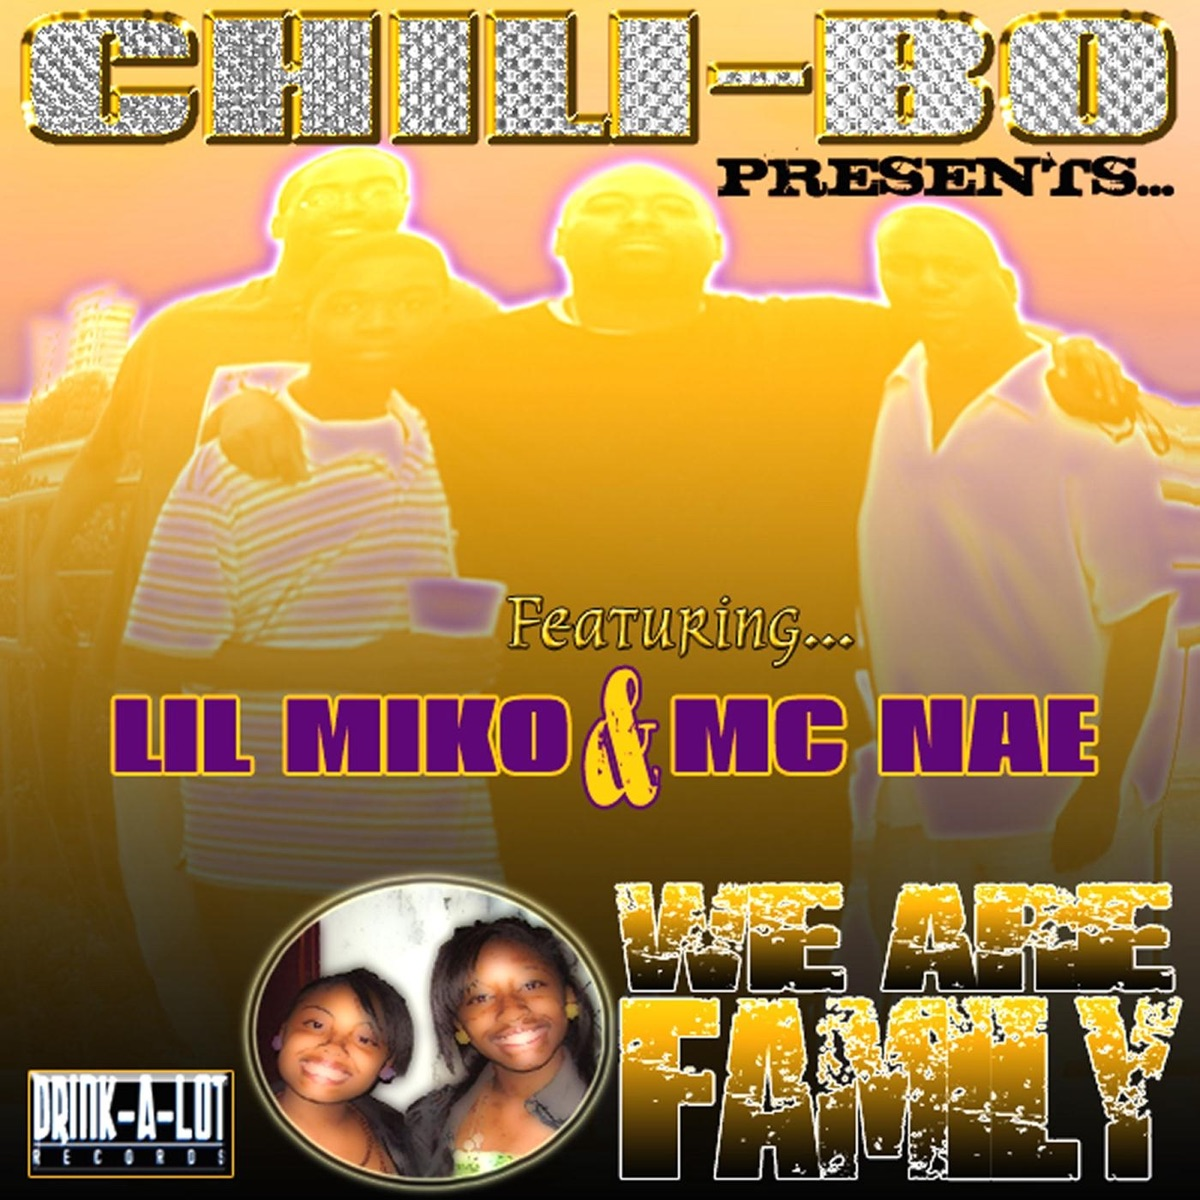 We Are Family feat Lil Miko  MC Nae - Single Chili-Bo CD cover